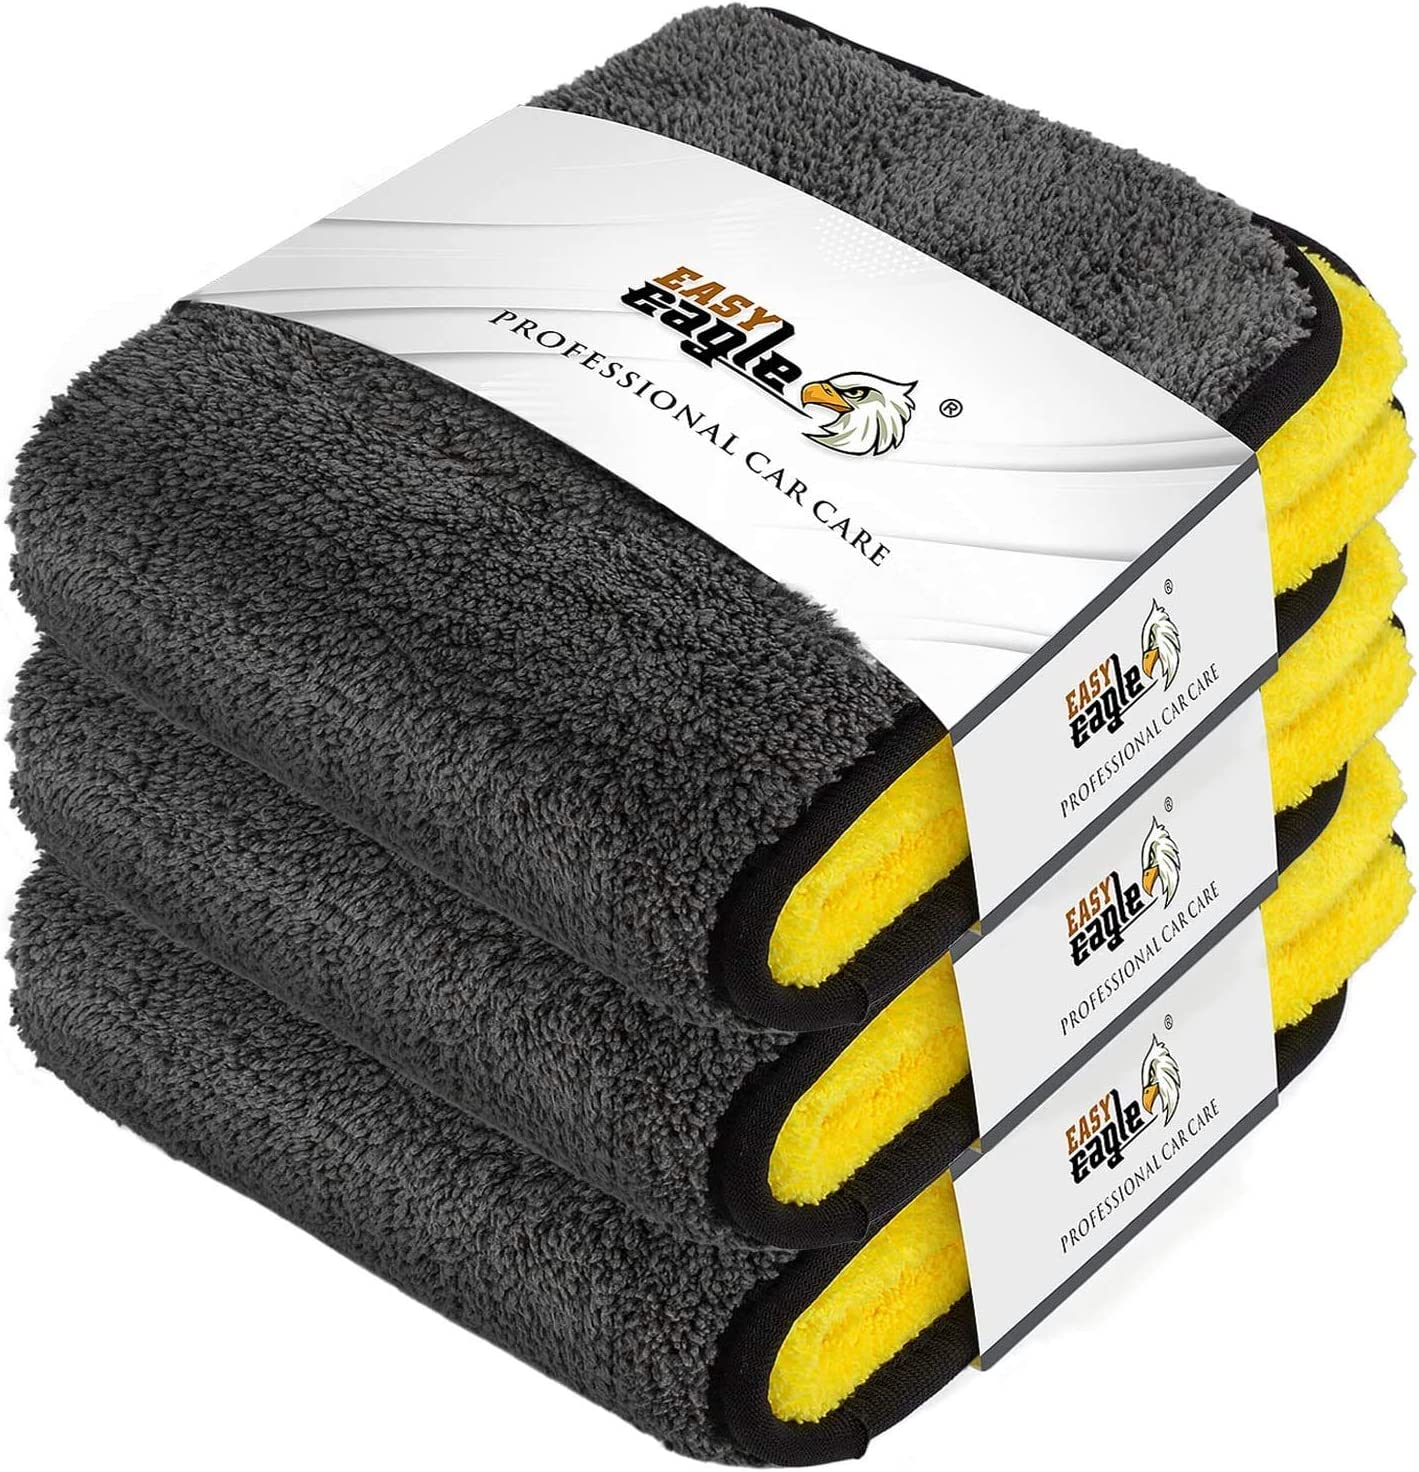 Car Wash Towels EASY EAGLE Microfiber Car Drying Towel 38x45CM Pack of 3 1200GSM Ultra-Thick Microfibre Cleaning Cloths